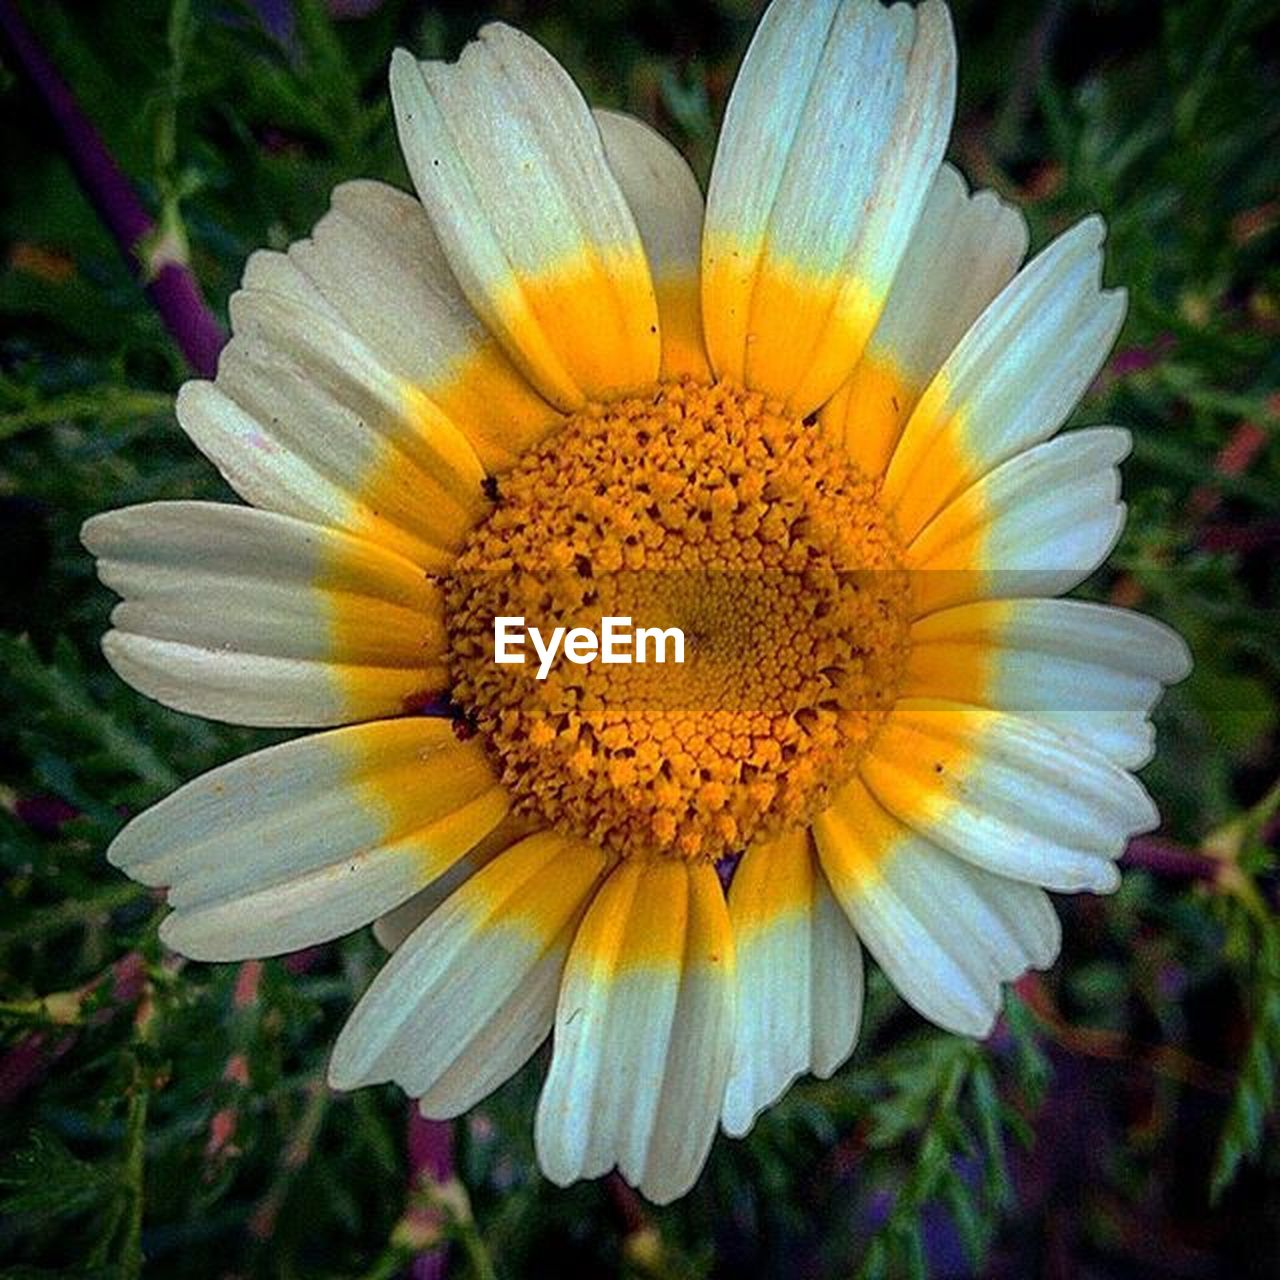 flower, petal, yellow, flower head, fragility, freshness, beauty in nature, nature, growth, plant, outdoors, gazania, pollen, no people, blooming, close-up, day, springtime, stamen